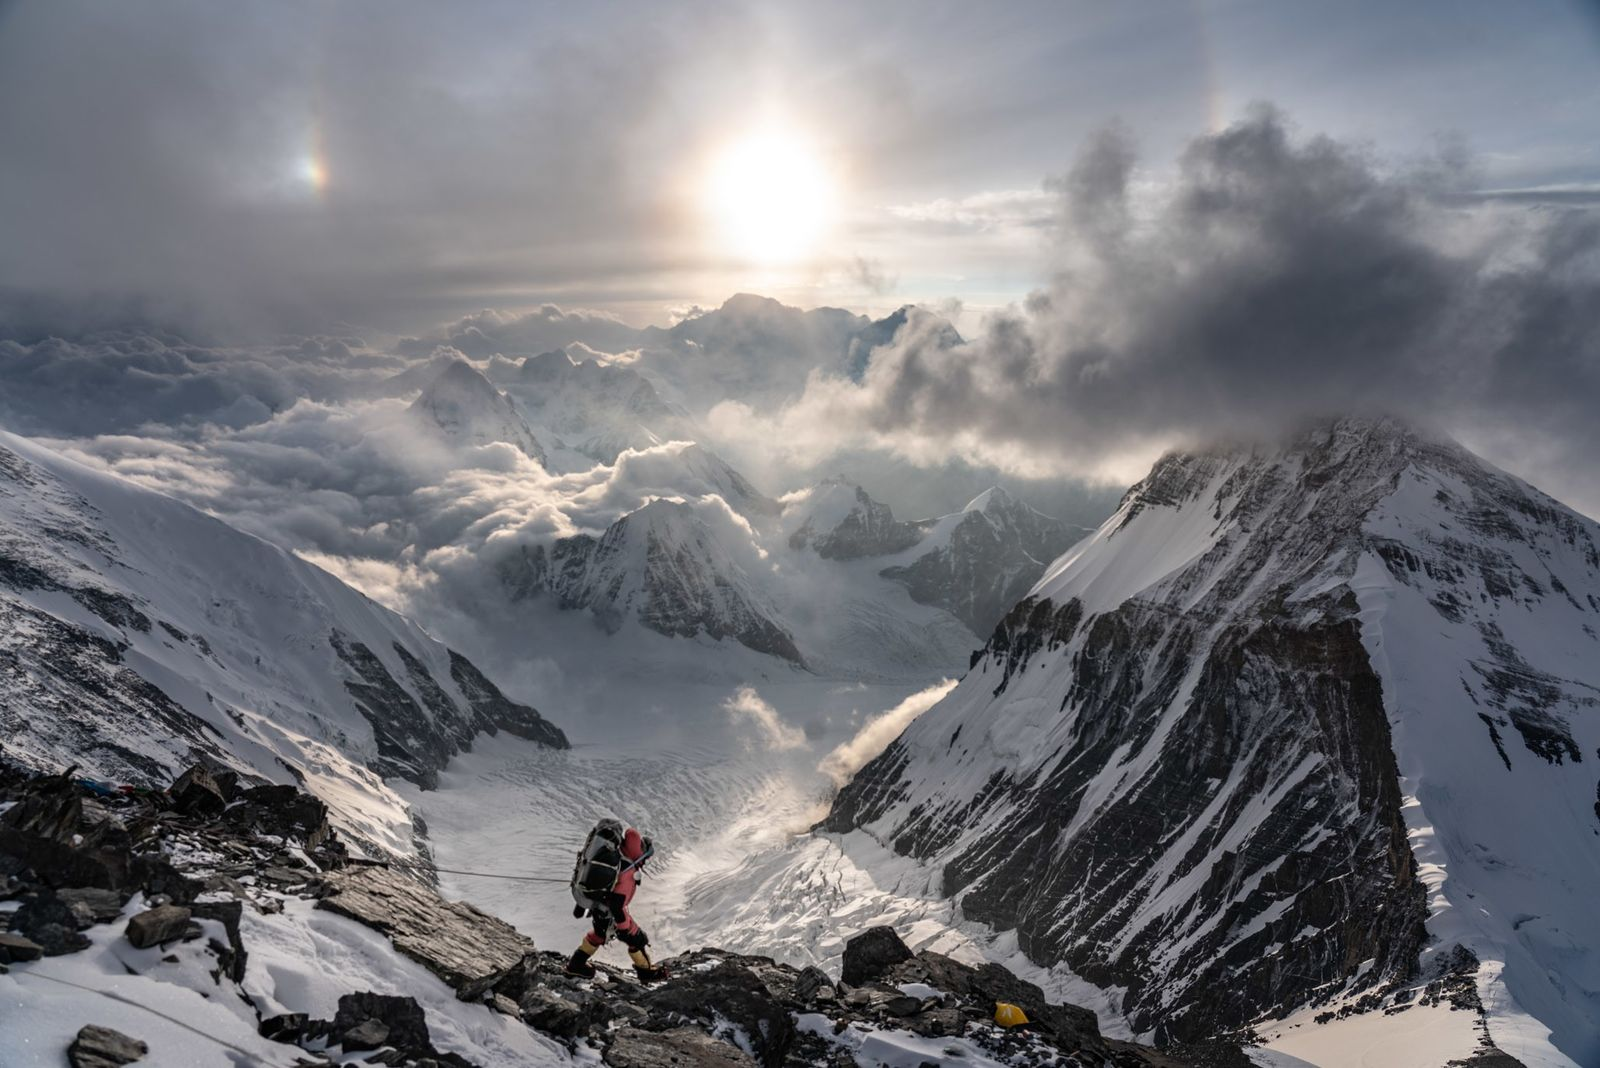 Bal Bahadur Lopchan, a support team member descends after the expedition completed its unsuccessful search for ...